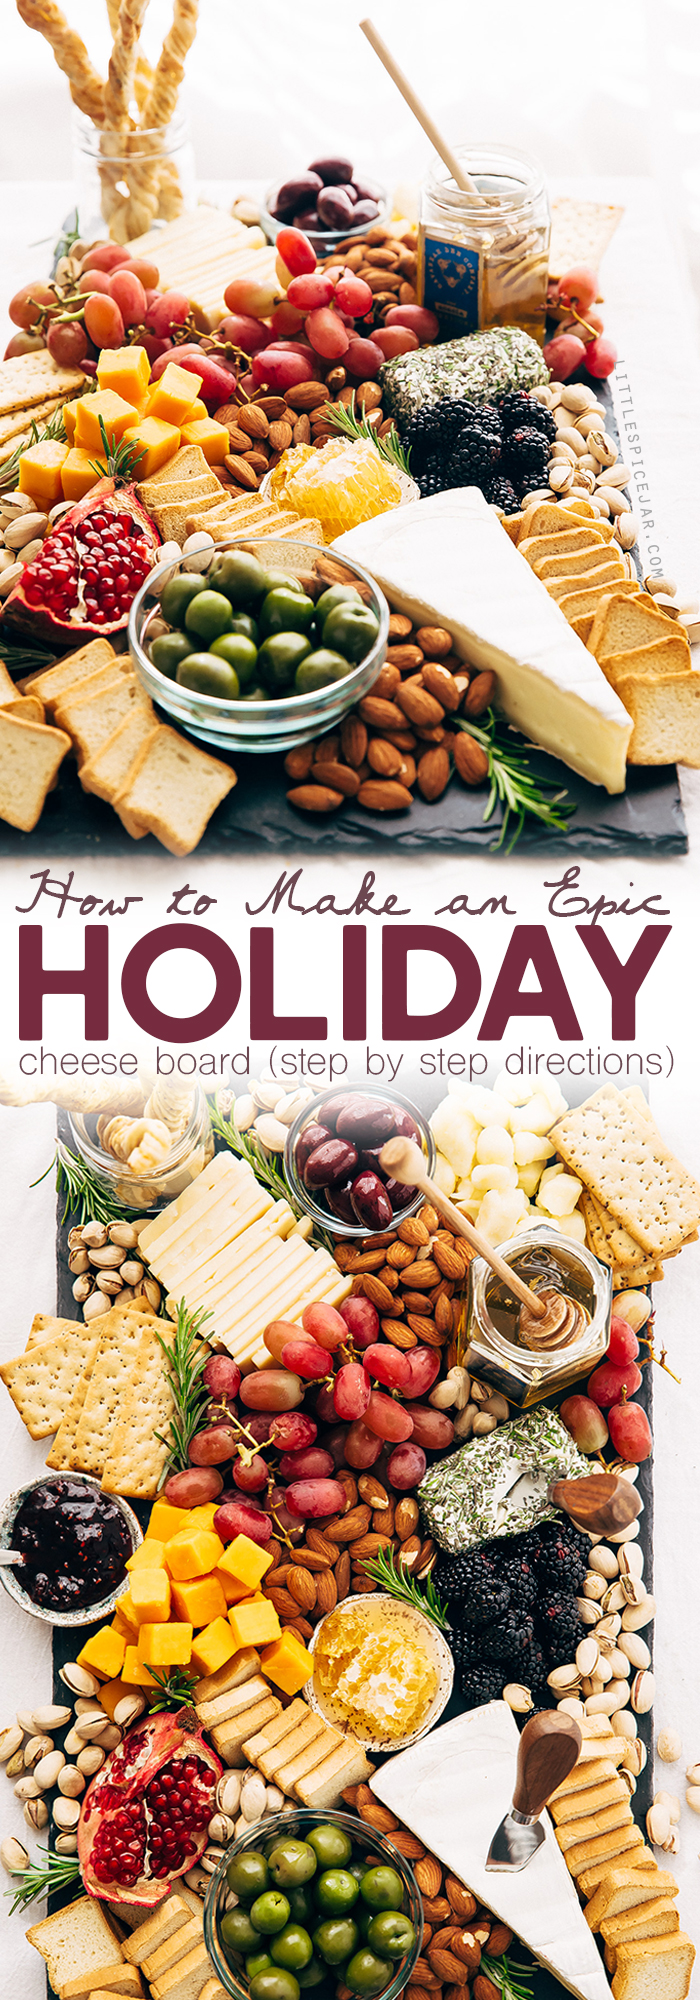 How to make an EPIC Holiday Cheese Board - Learn step-by-step how to put together the best cheese board your guests have seen! #holidaycheeseboard #cheeseboard #cheeseplatter #cheeseplate #cheeseandfruitplate | Littlespicejar.com